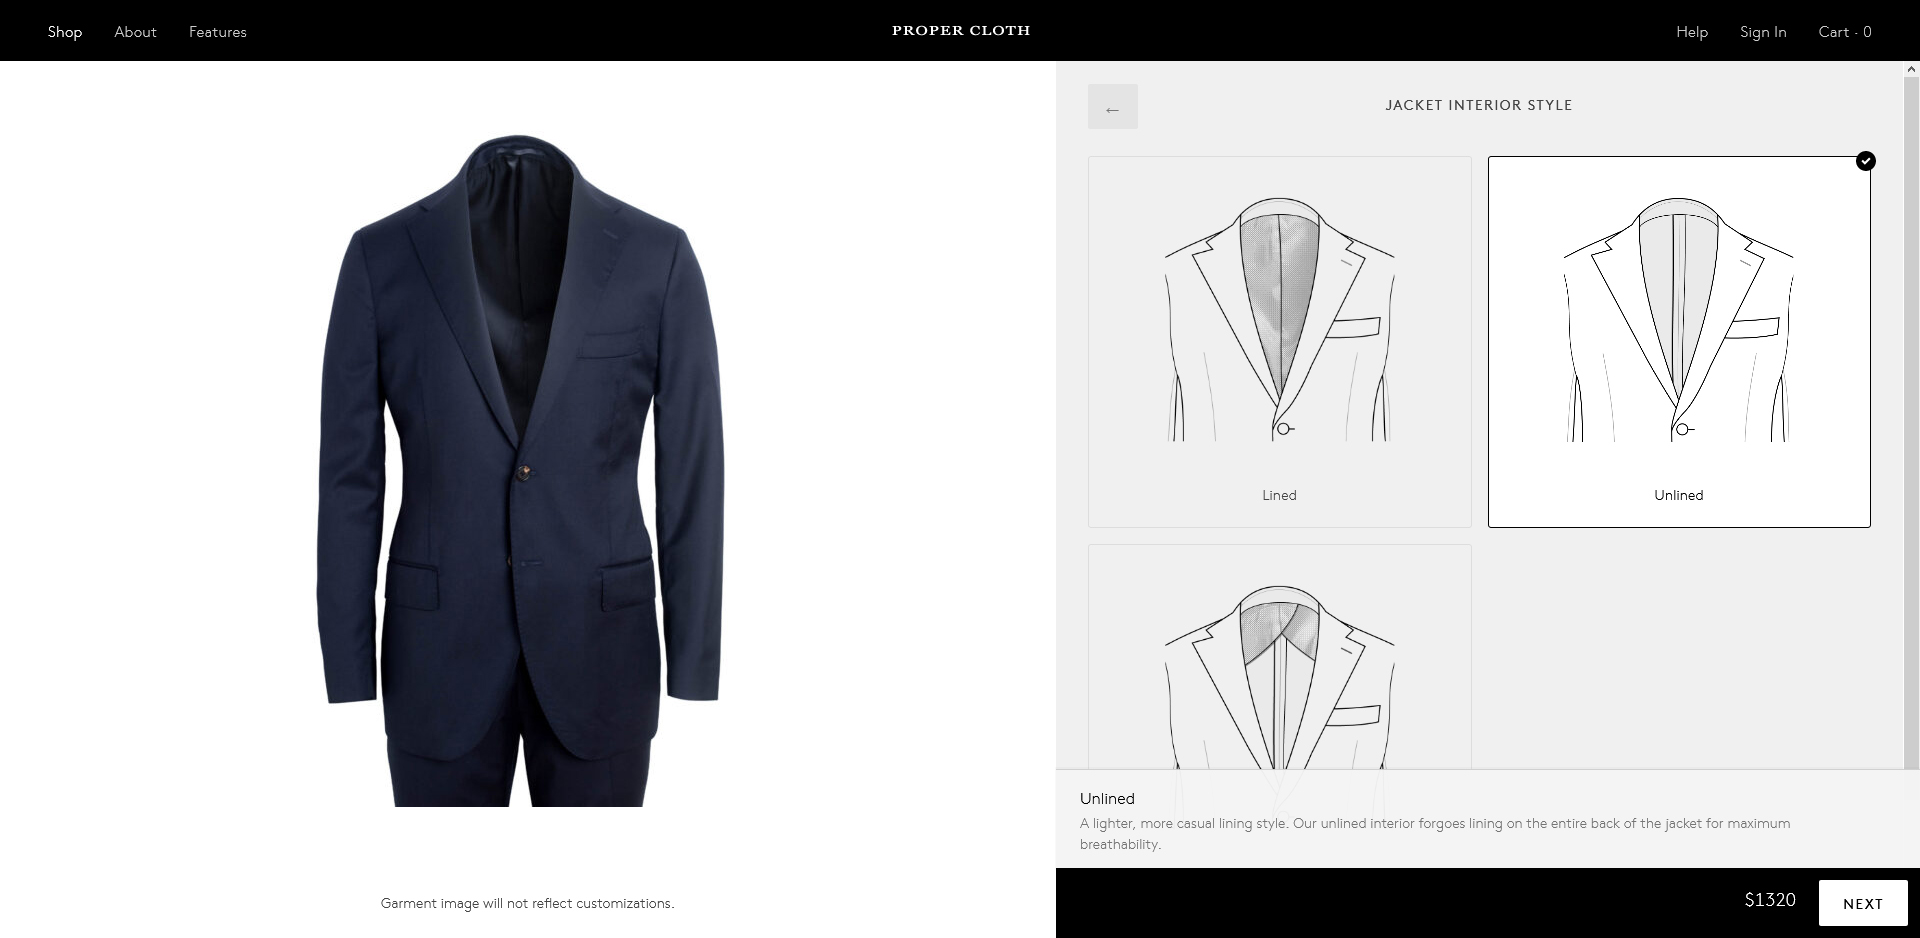 Proper Cloth made-to-measure suit jacket interior options